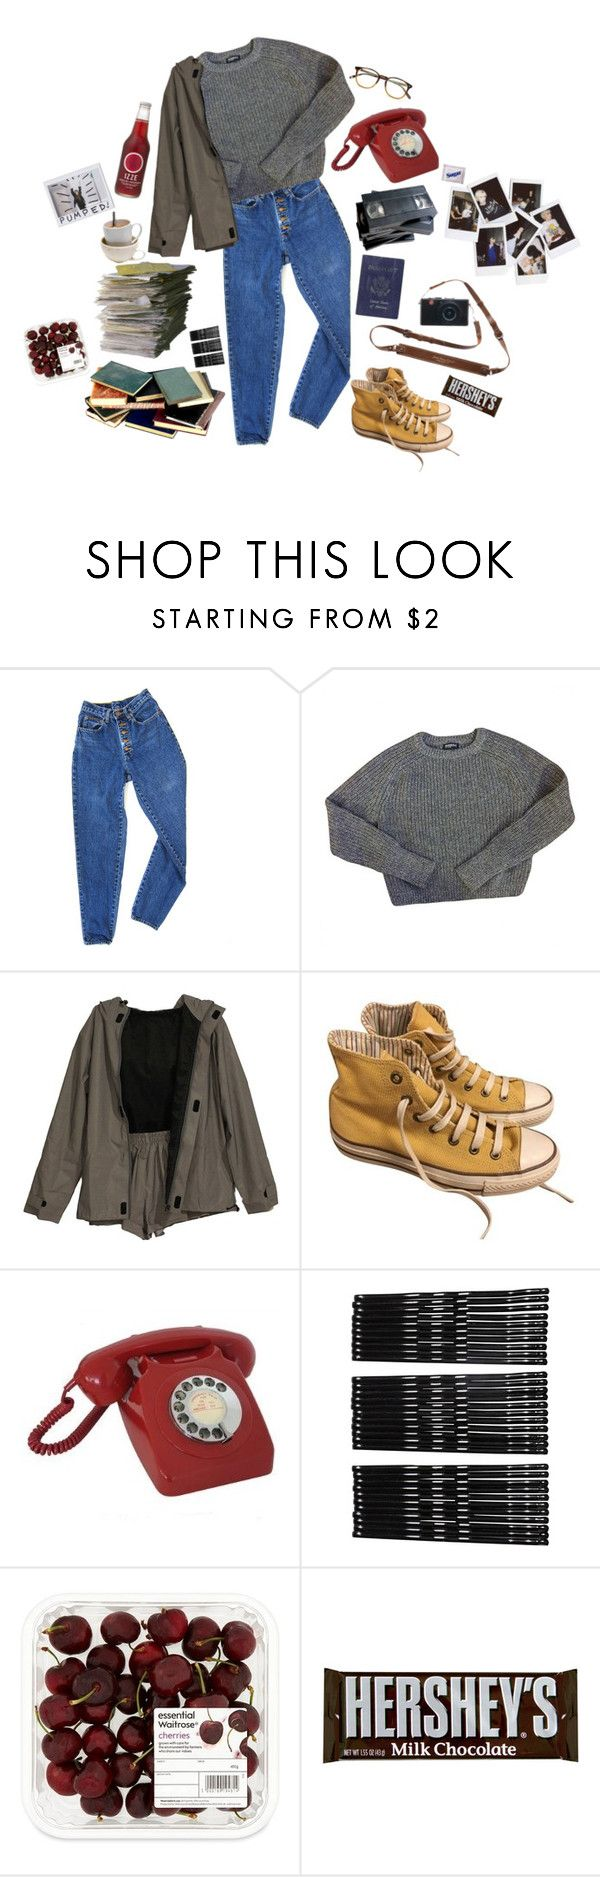 """Lone Digger"" by black-and-white-hipster on Polyvore featuring PèPè, American Apparel, Converse, CO, Nasty Gal, Passport, Monki and Garrett Leight"